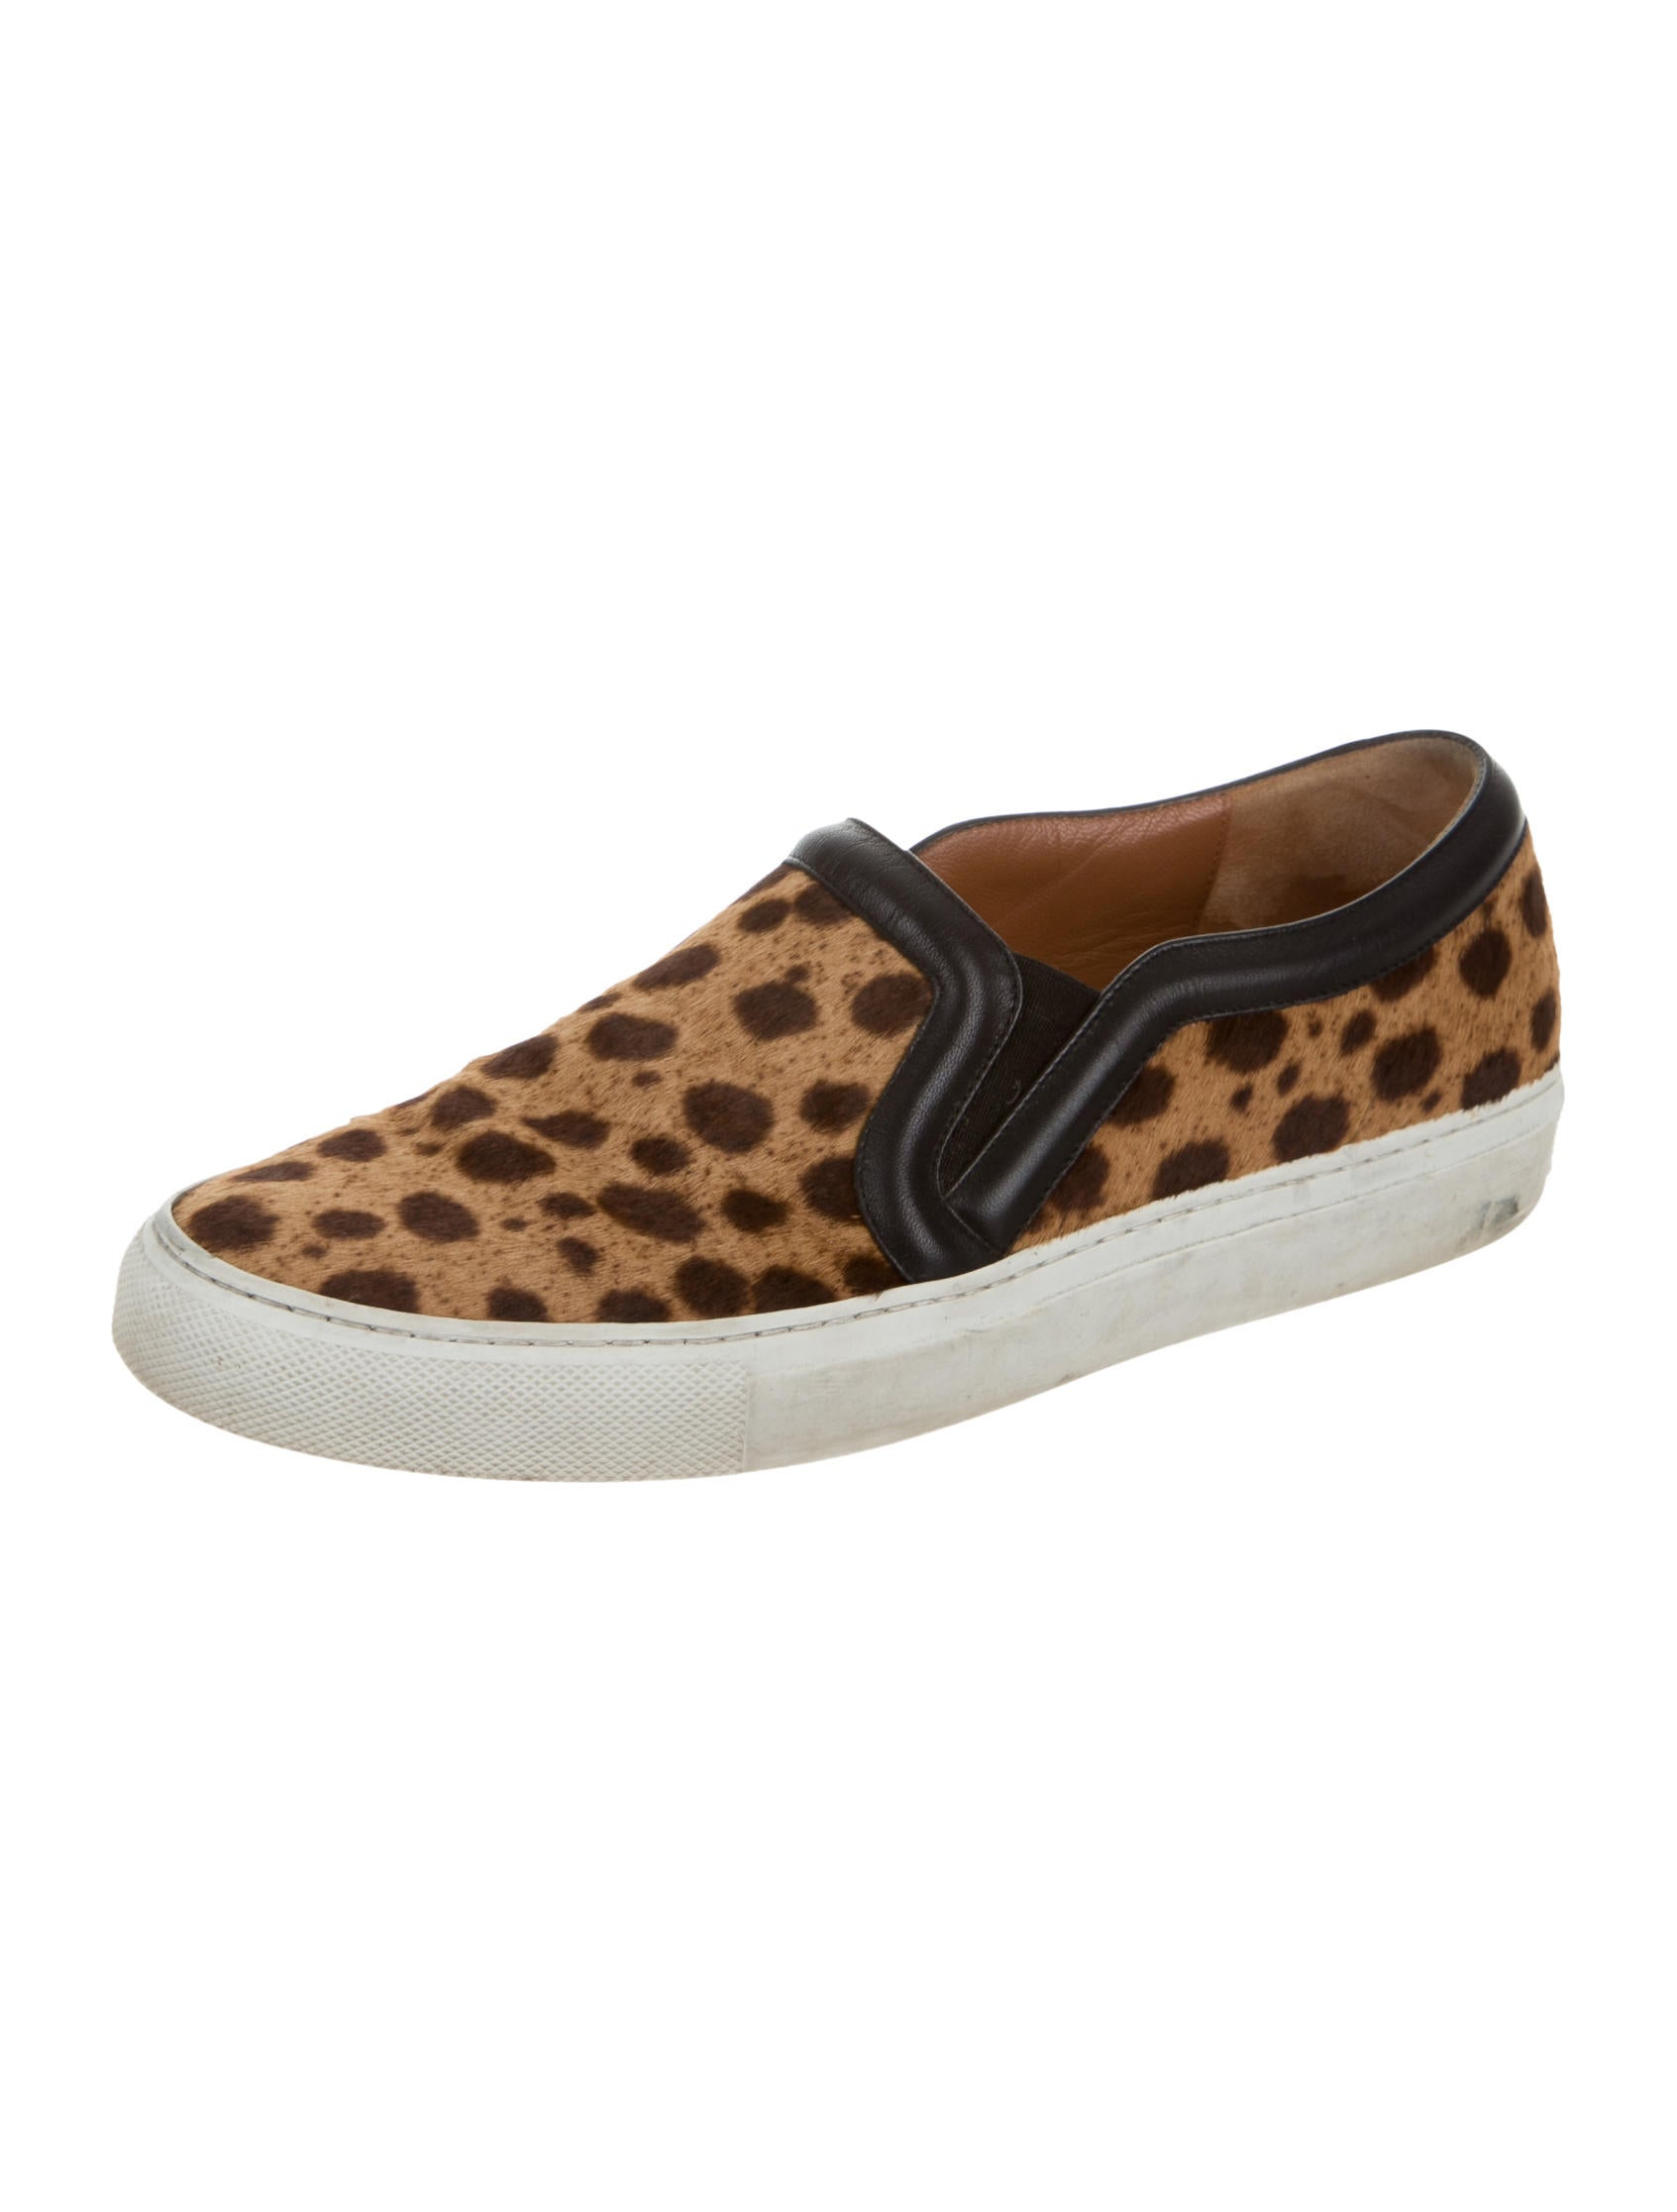 givenchy ponyhair slip on sneakers shoes giv37546